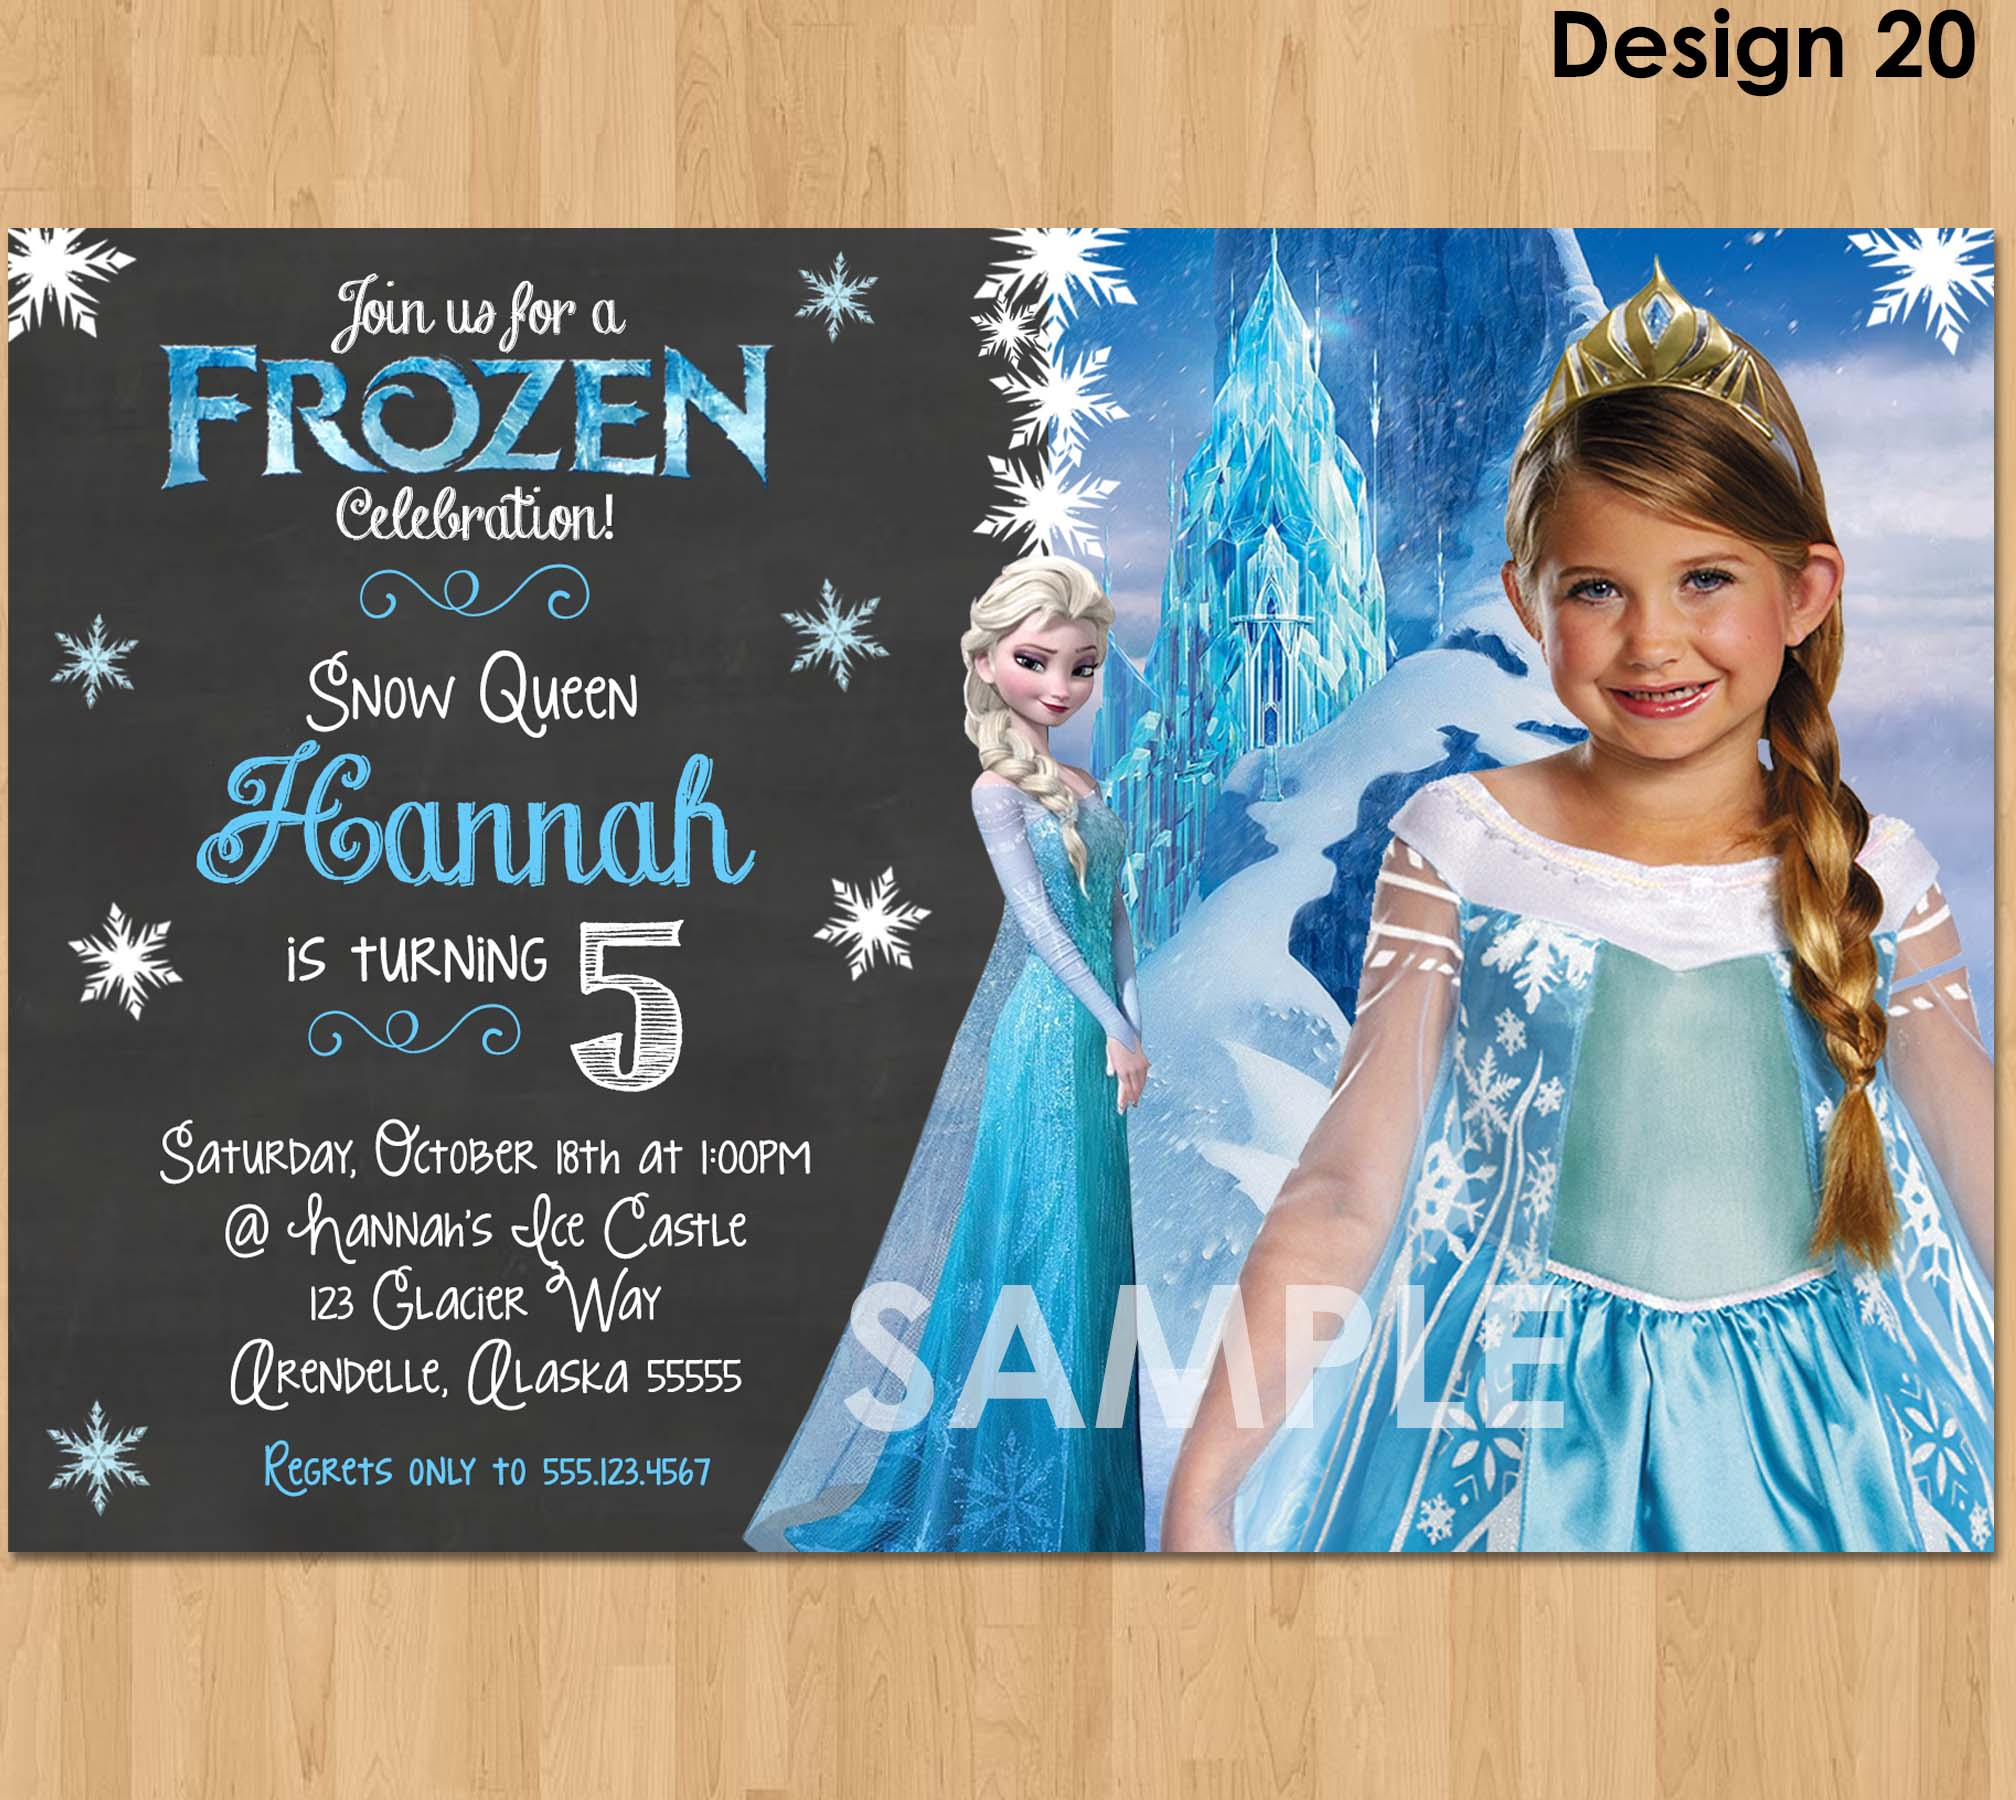 image relating to Printable Frozen Birthday Invitations titled Frozen Image Invitation - Frozen Chalkboard Invitation - Disney Frozen Birthday Invitation Celebration Invite Designs Printable Elsa Electronic Personalized